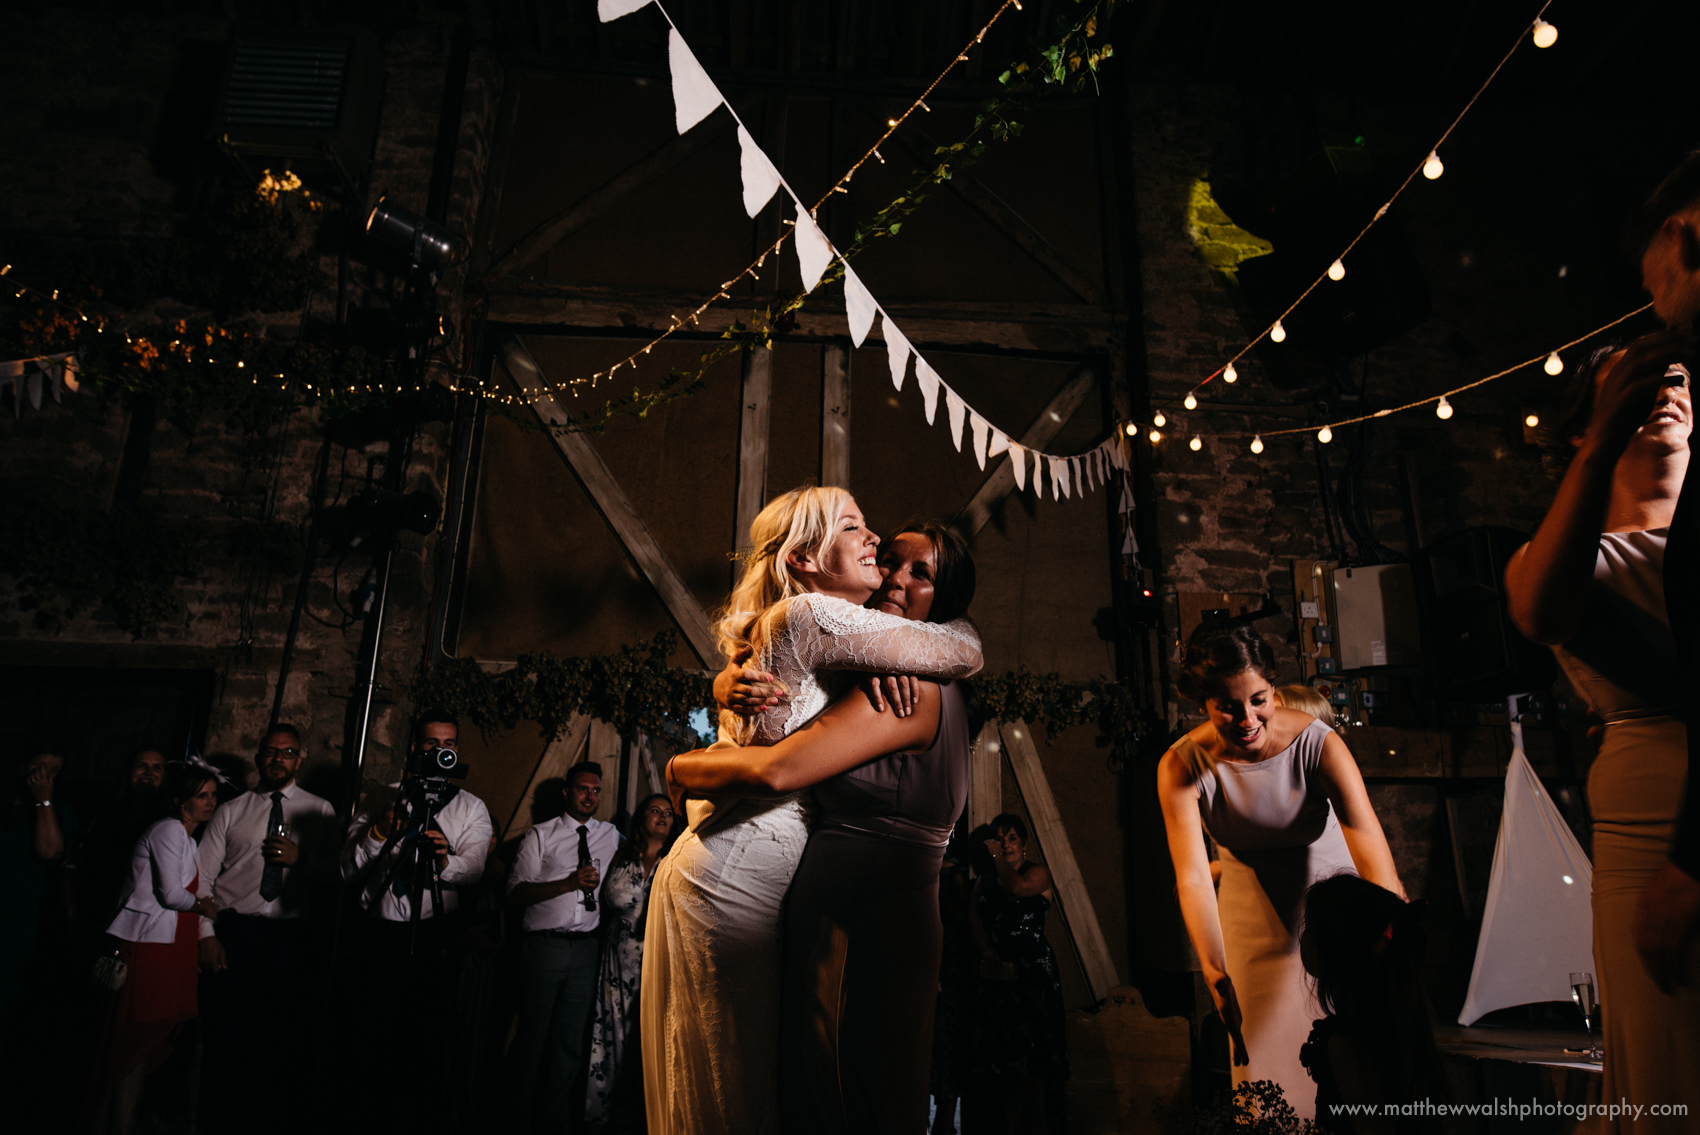 An excited friend hugs and congratulates the bride